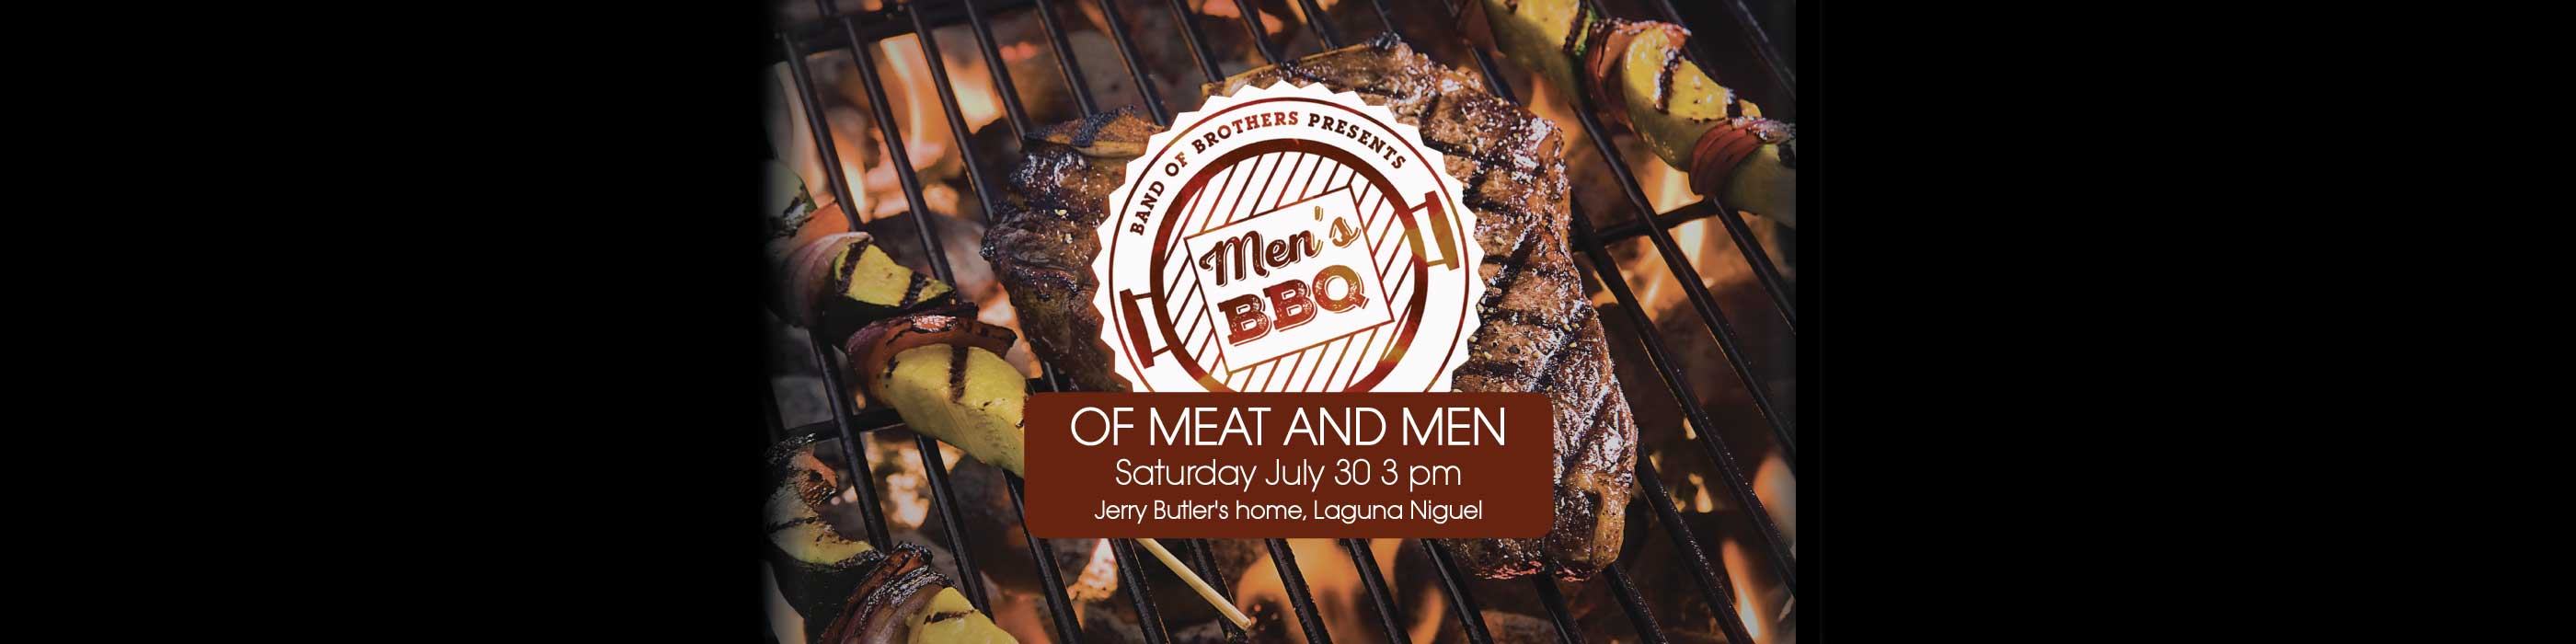 Summit-Of-Meat-and-Men-073016-Final_web